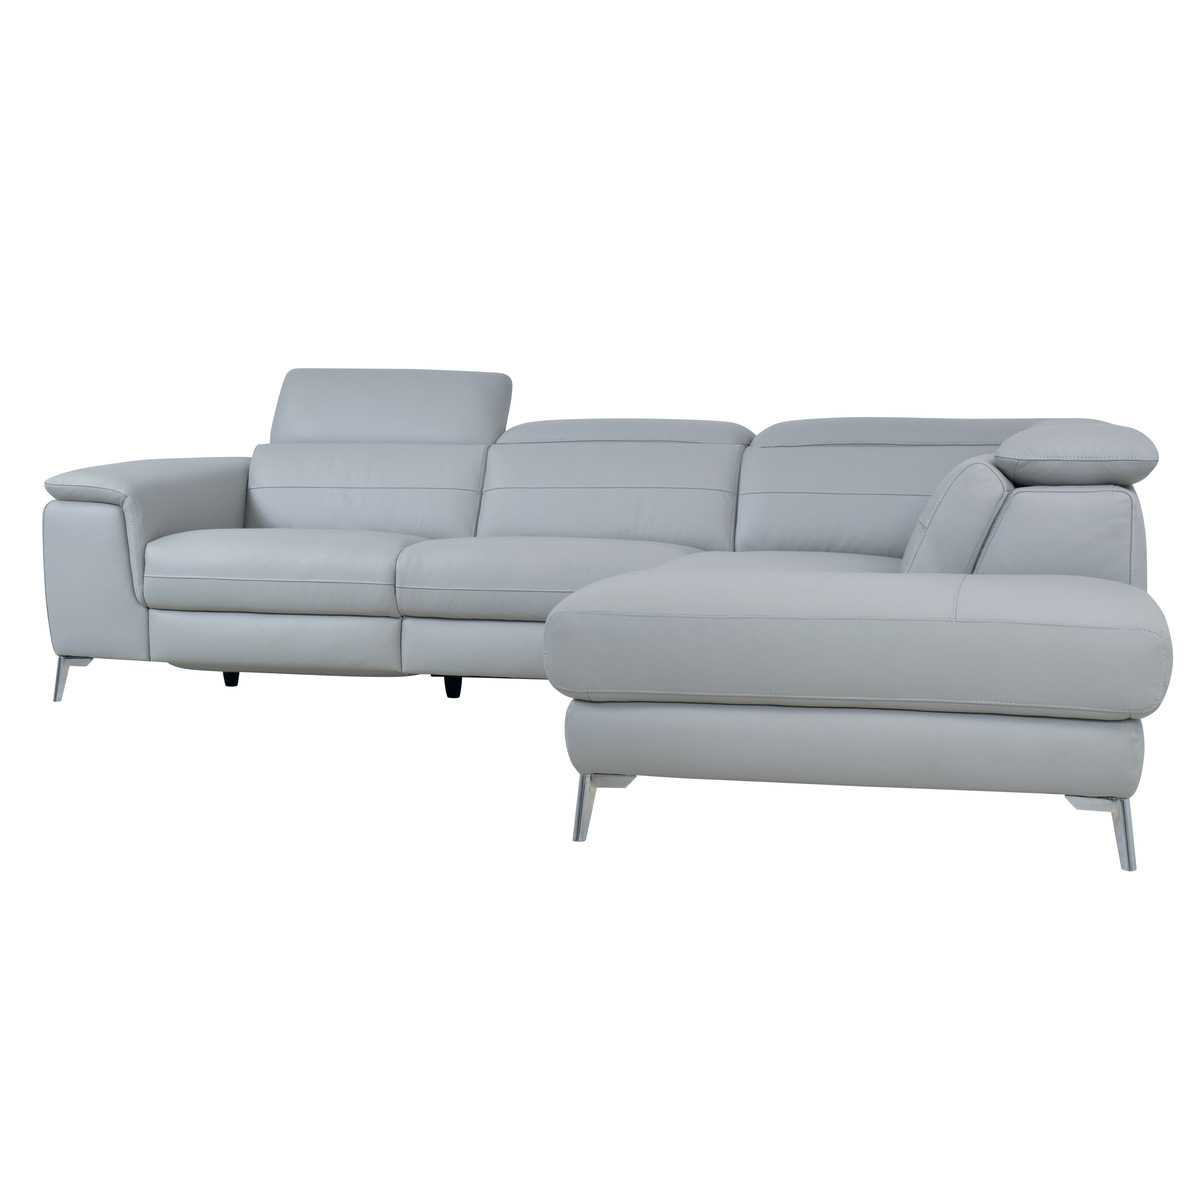 2Pc Crowningshield Contemporary Chaise Sofas Light Gray In Newest 8256Gylss 2 Piece Sectional With Left Chaise, Light Grey (View 10 of 25)